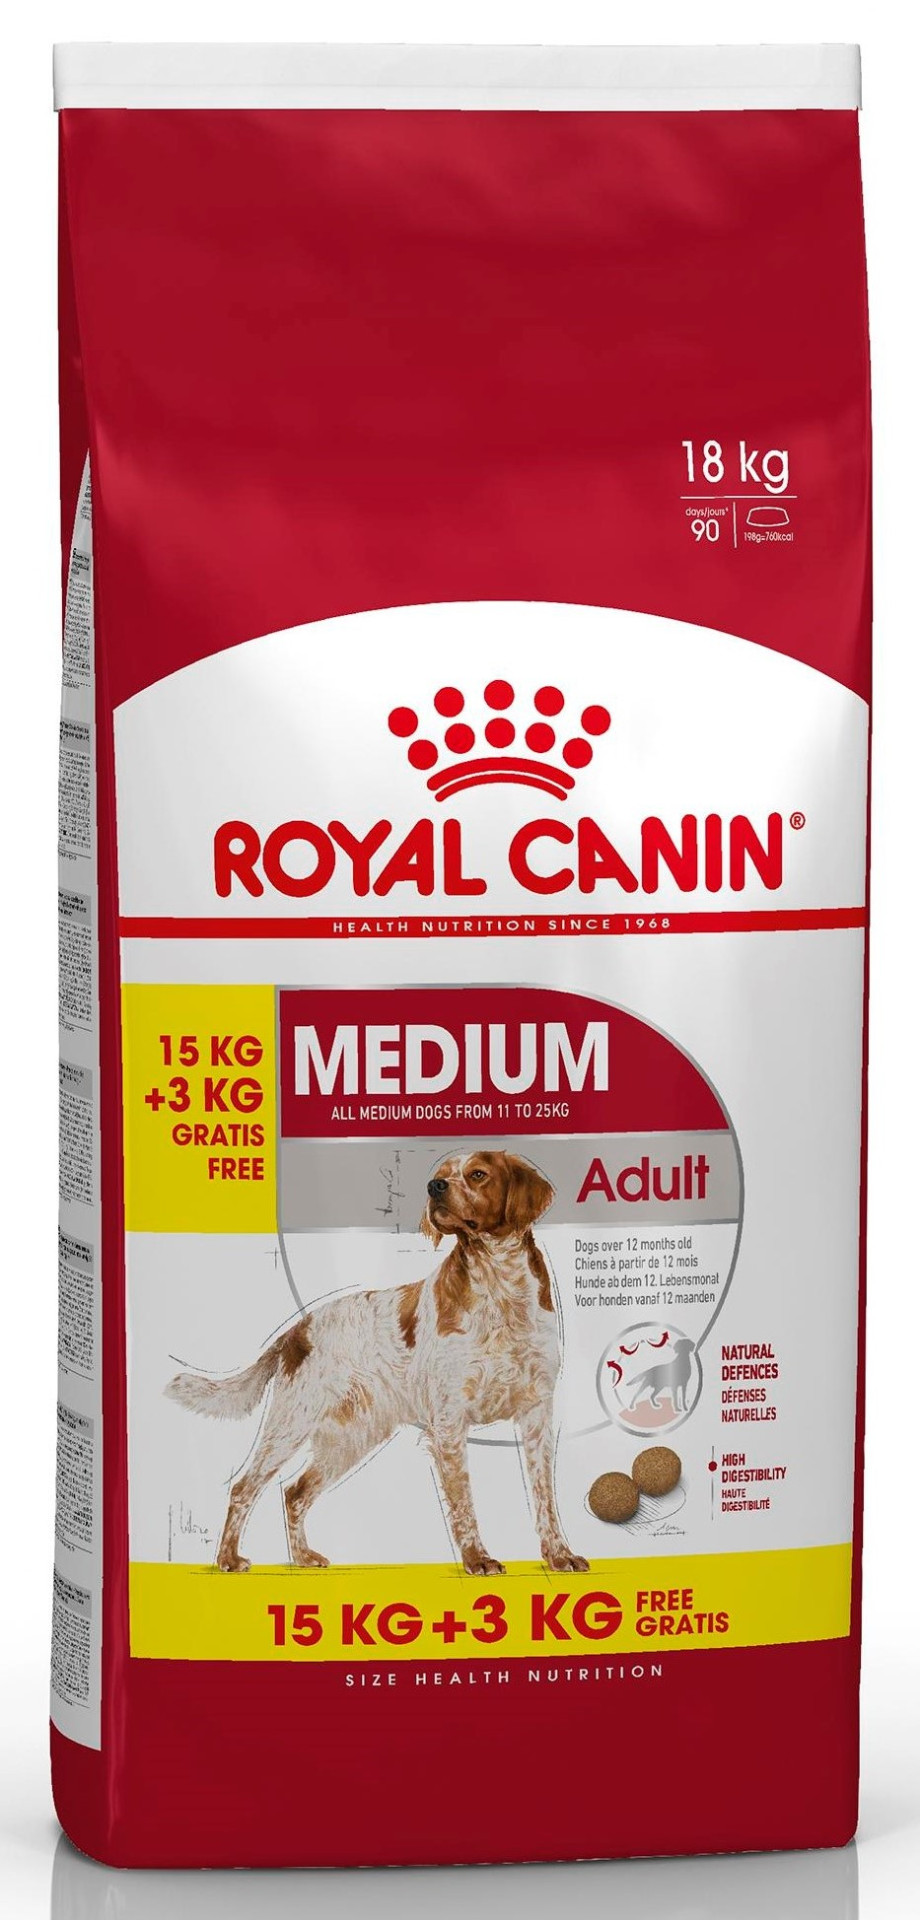 15 + 3 kg Royal Canin hondenvoer Medium Adult